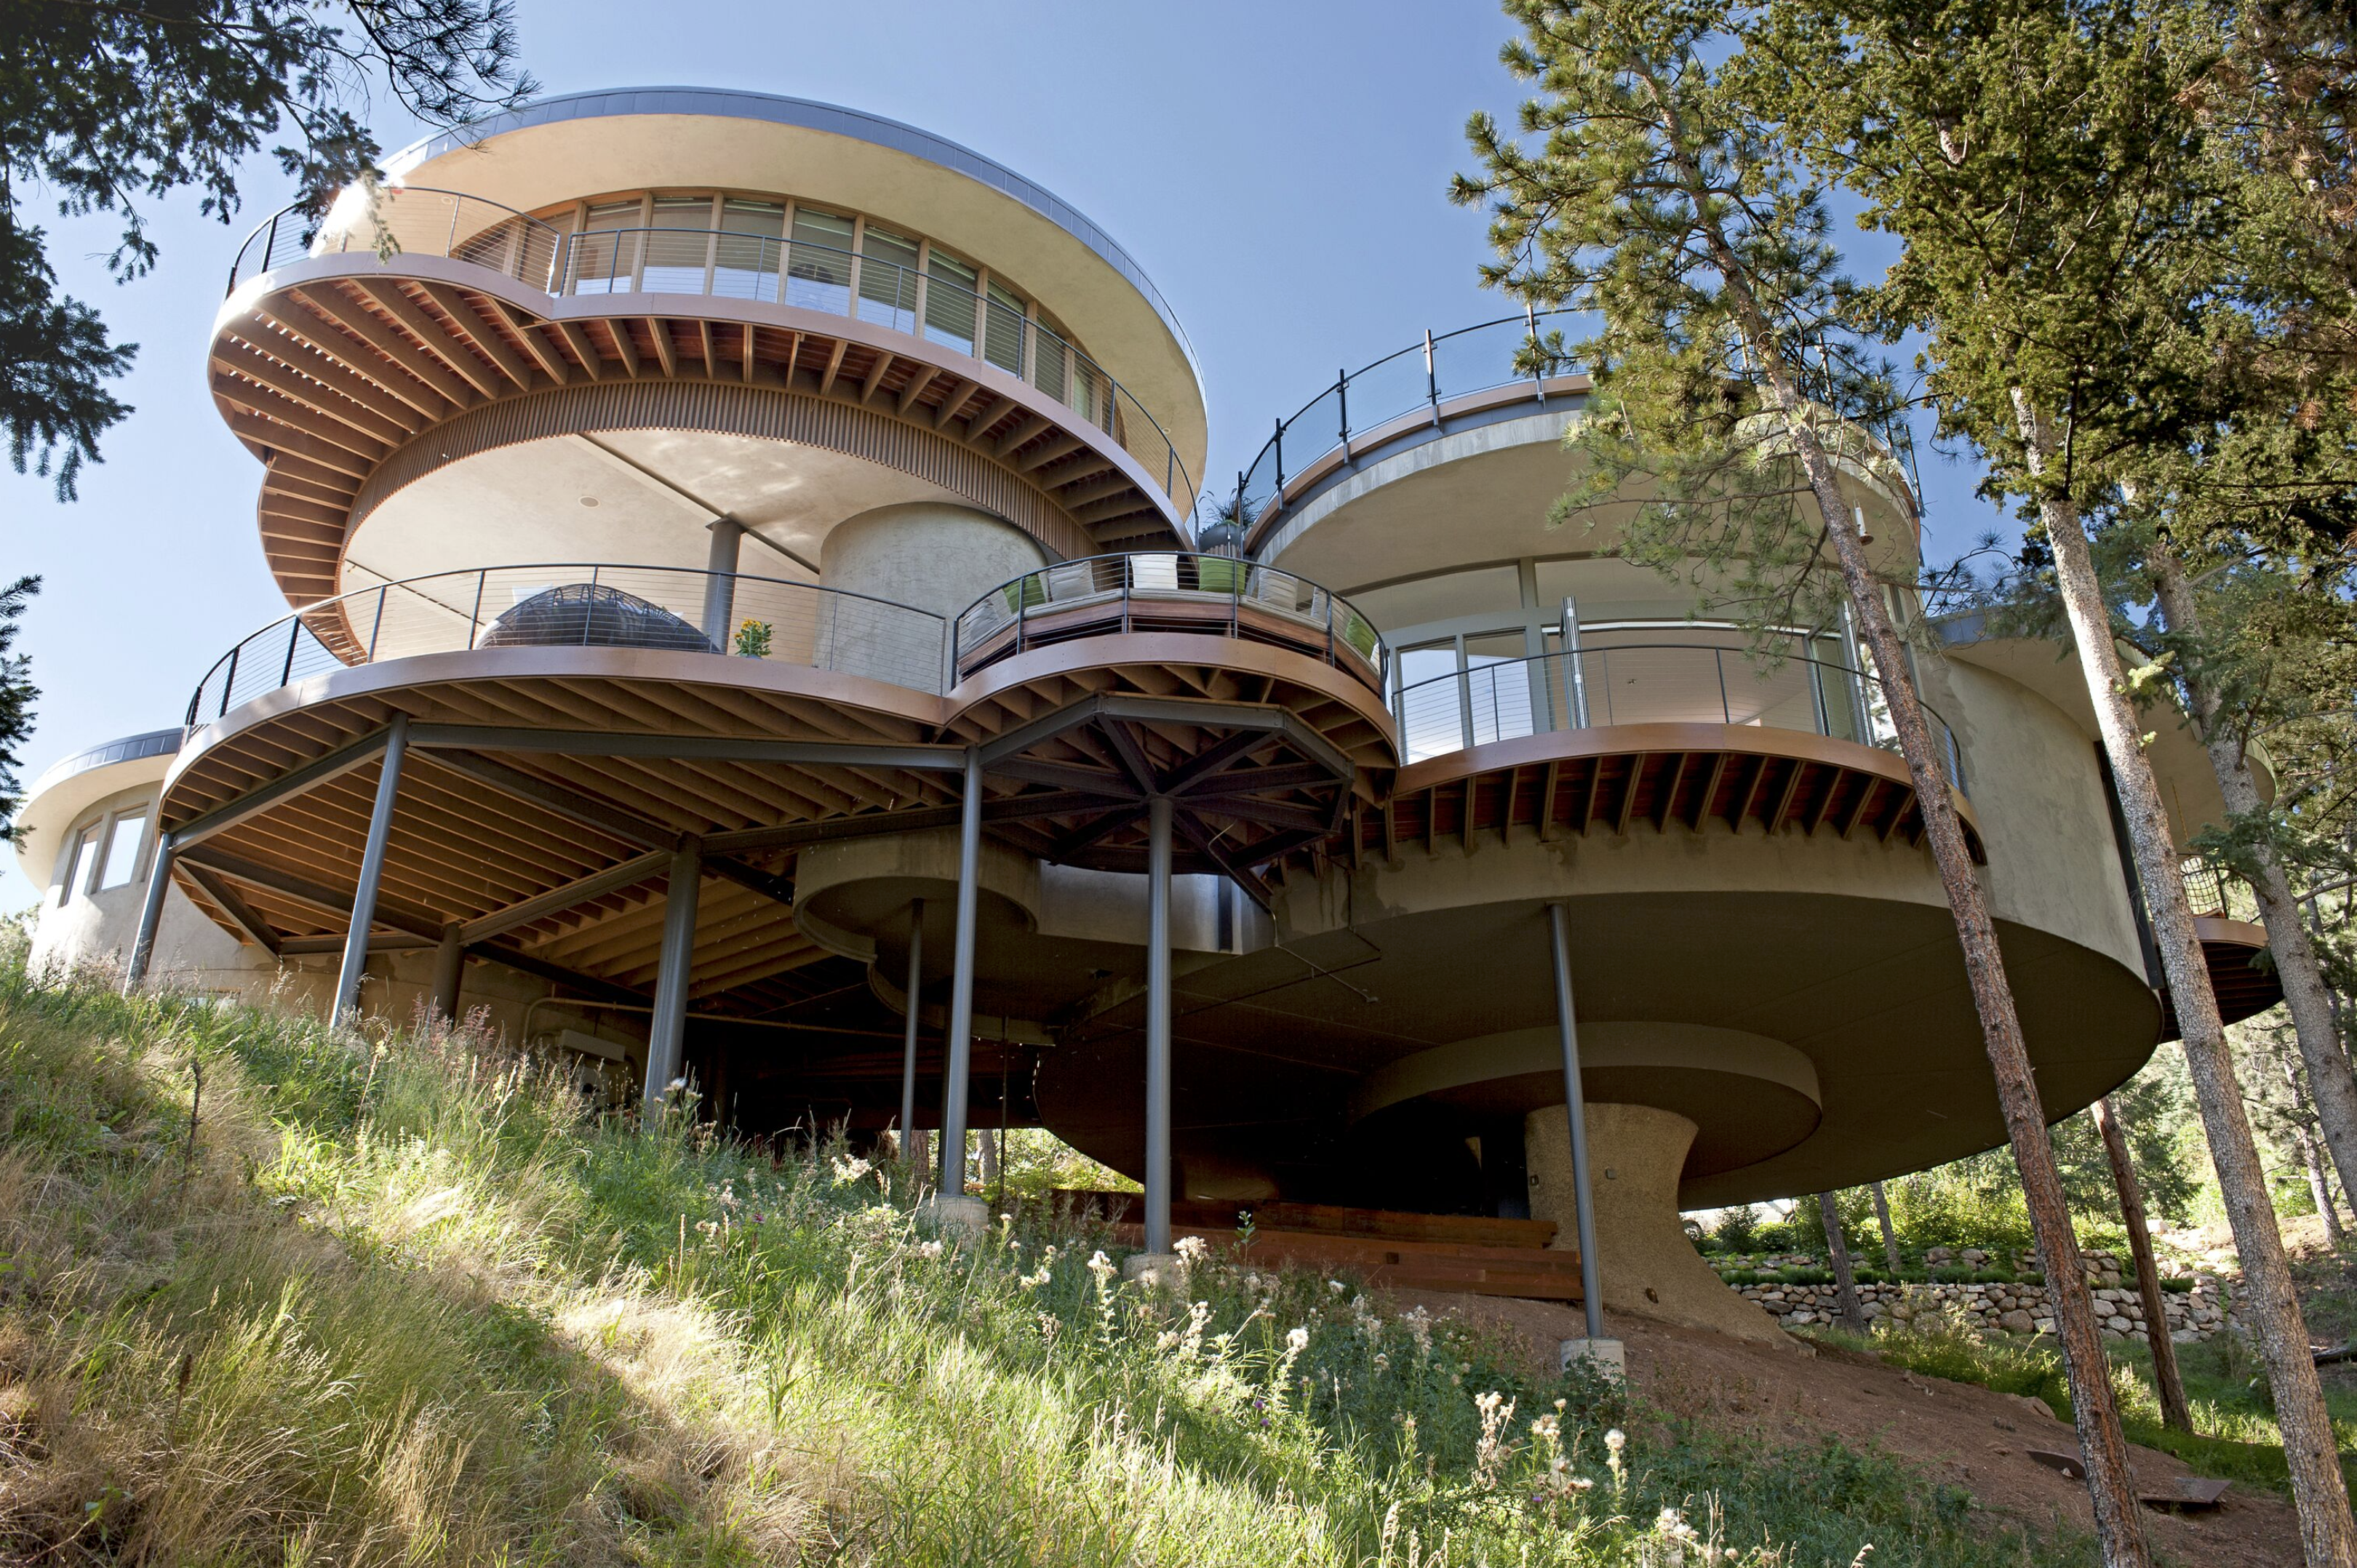 The Round House, Colorado Springs, Colorado, 2011